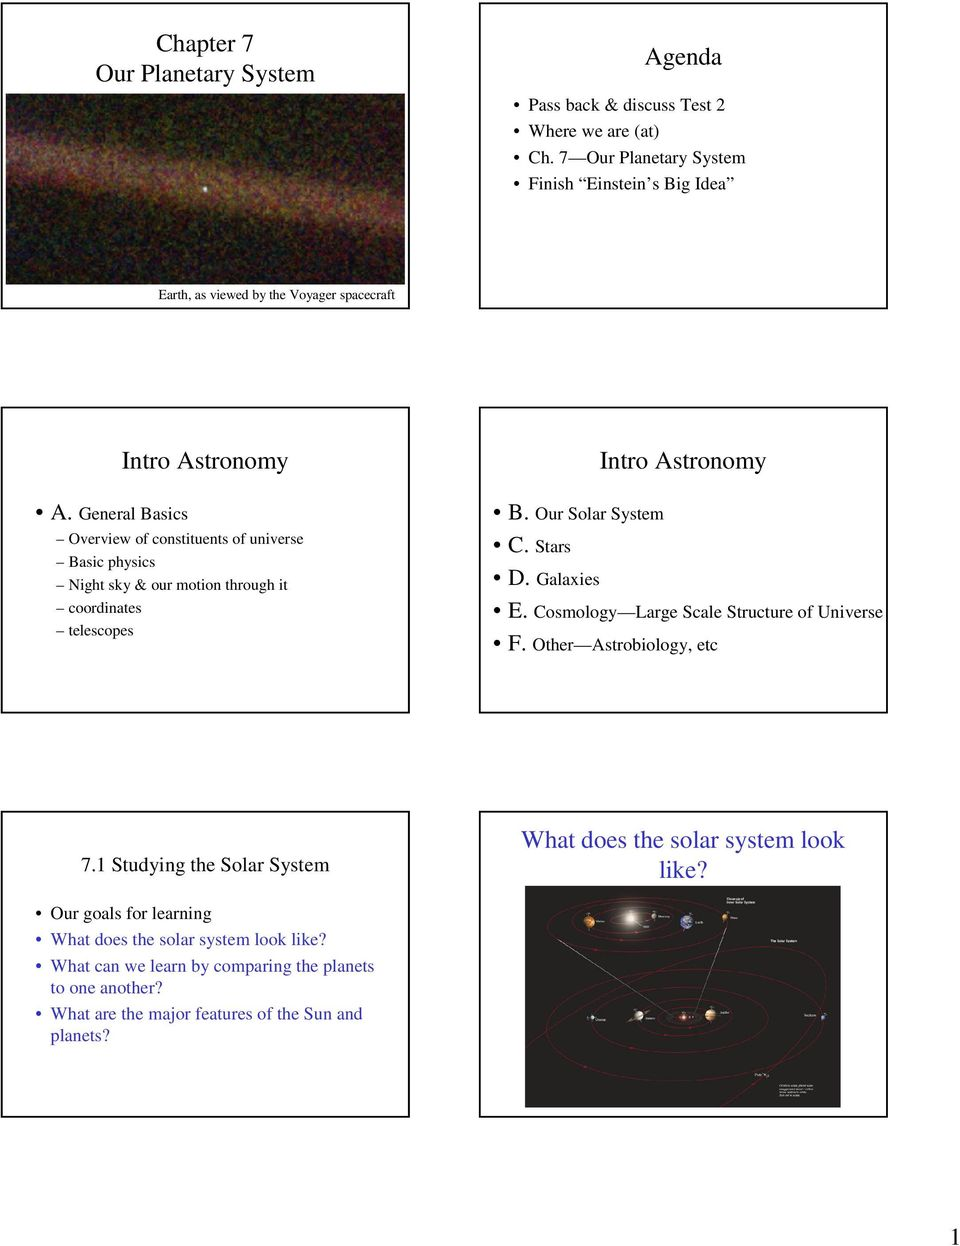 General Basics Intro Astronomy Overview of constituents of universe Basic physics Night sky & our motion through it coordinates telescopes Intro Astronomy B.